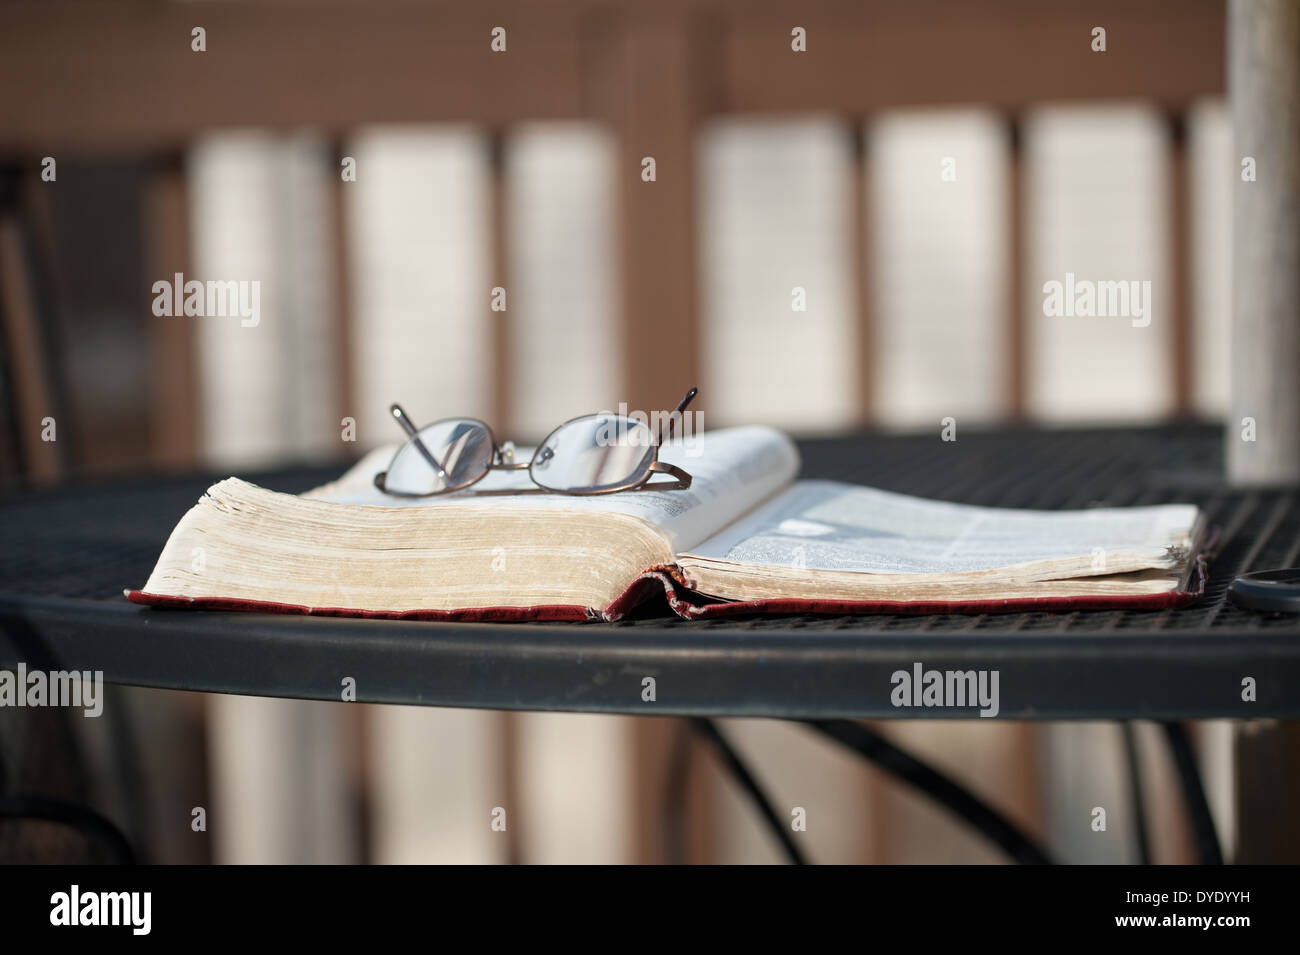 A pair of reading glasses lies on top of an open Bible laying on a wrought iron table on a wooden deck with matching chairs. - Stock Image